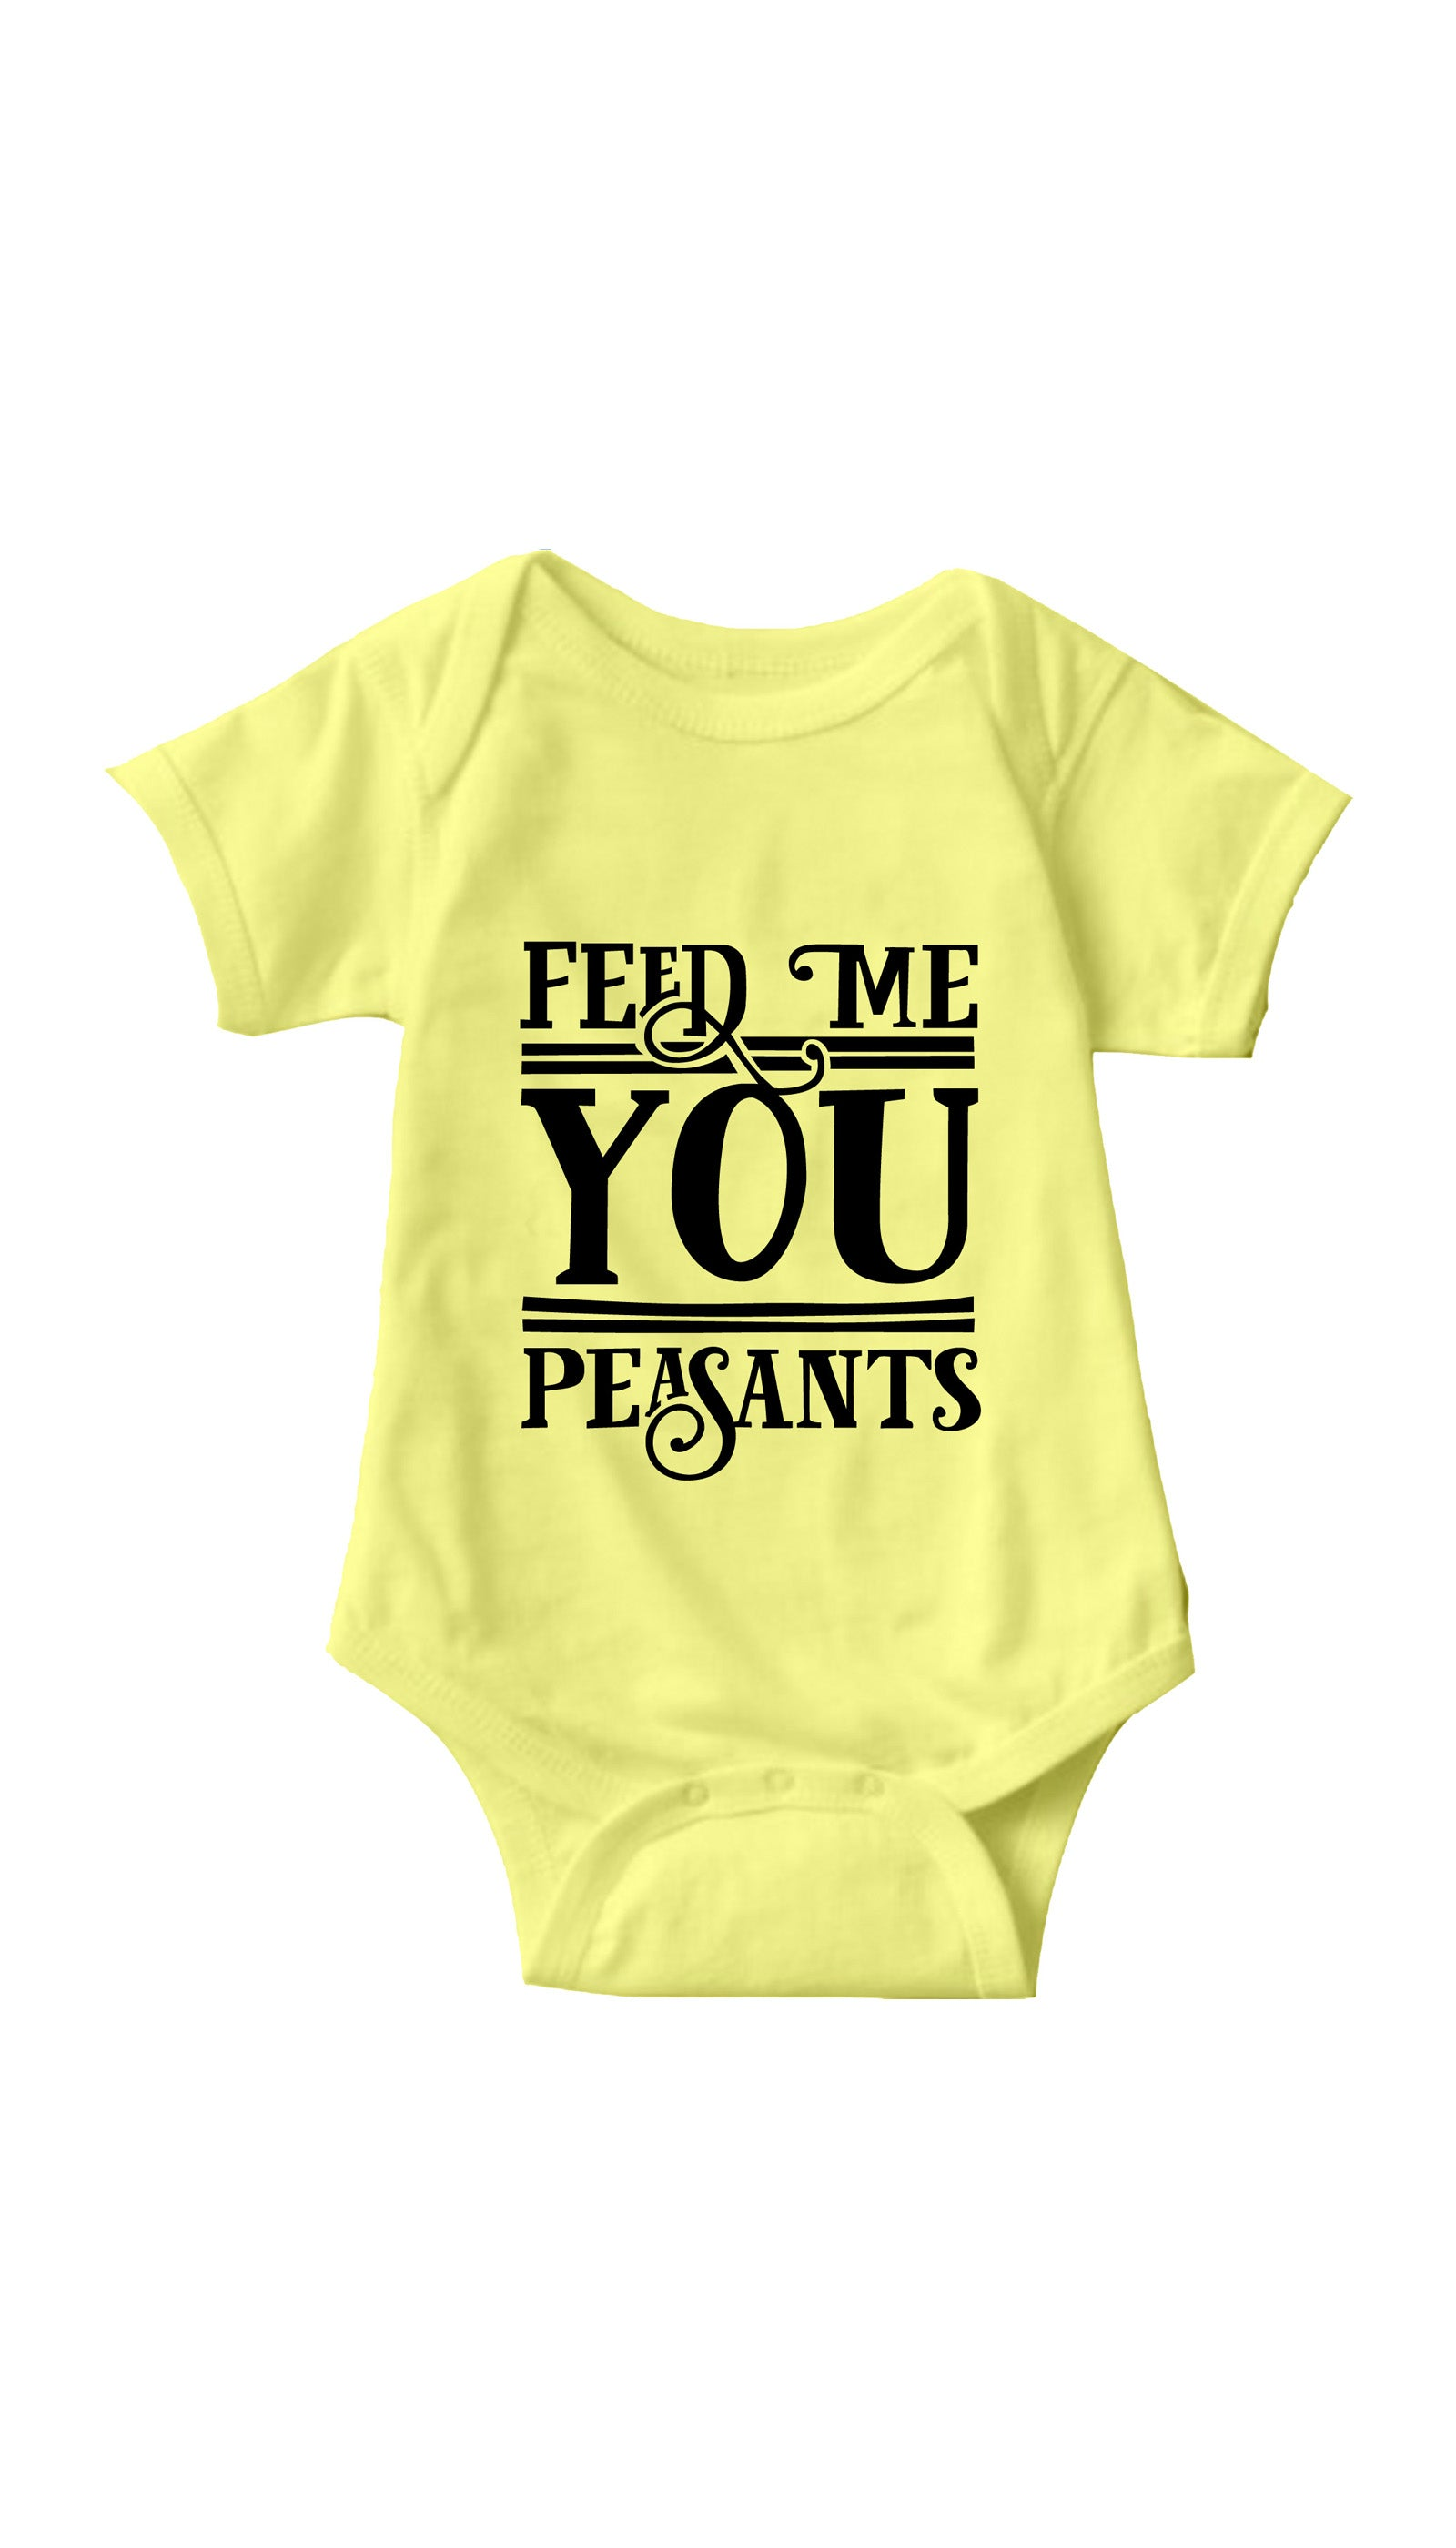 Feed Me You Peasants Yellow Infant Onesie | Sarcastic ME